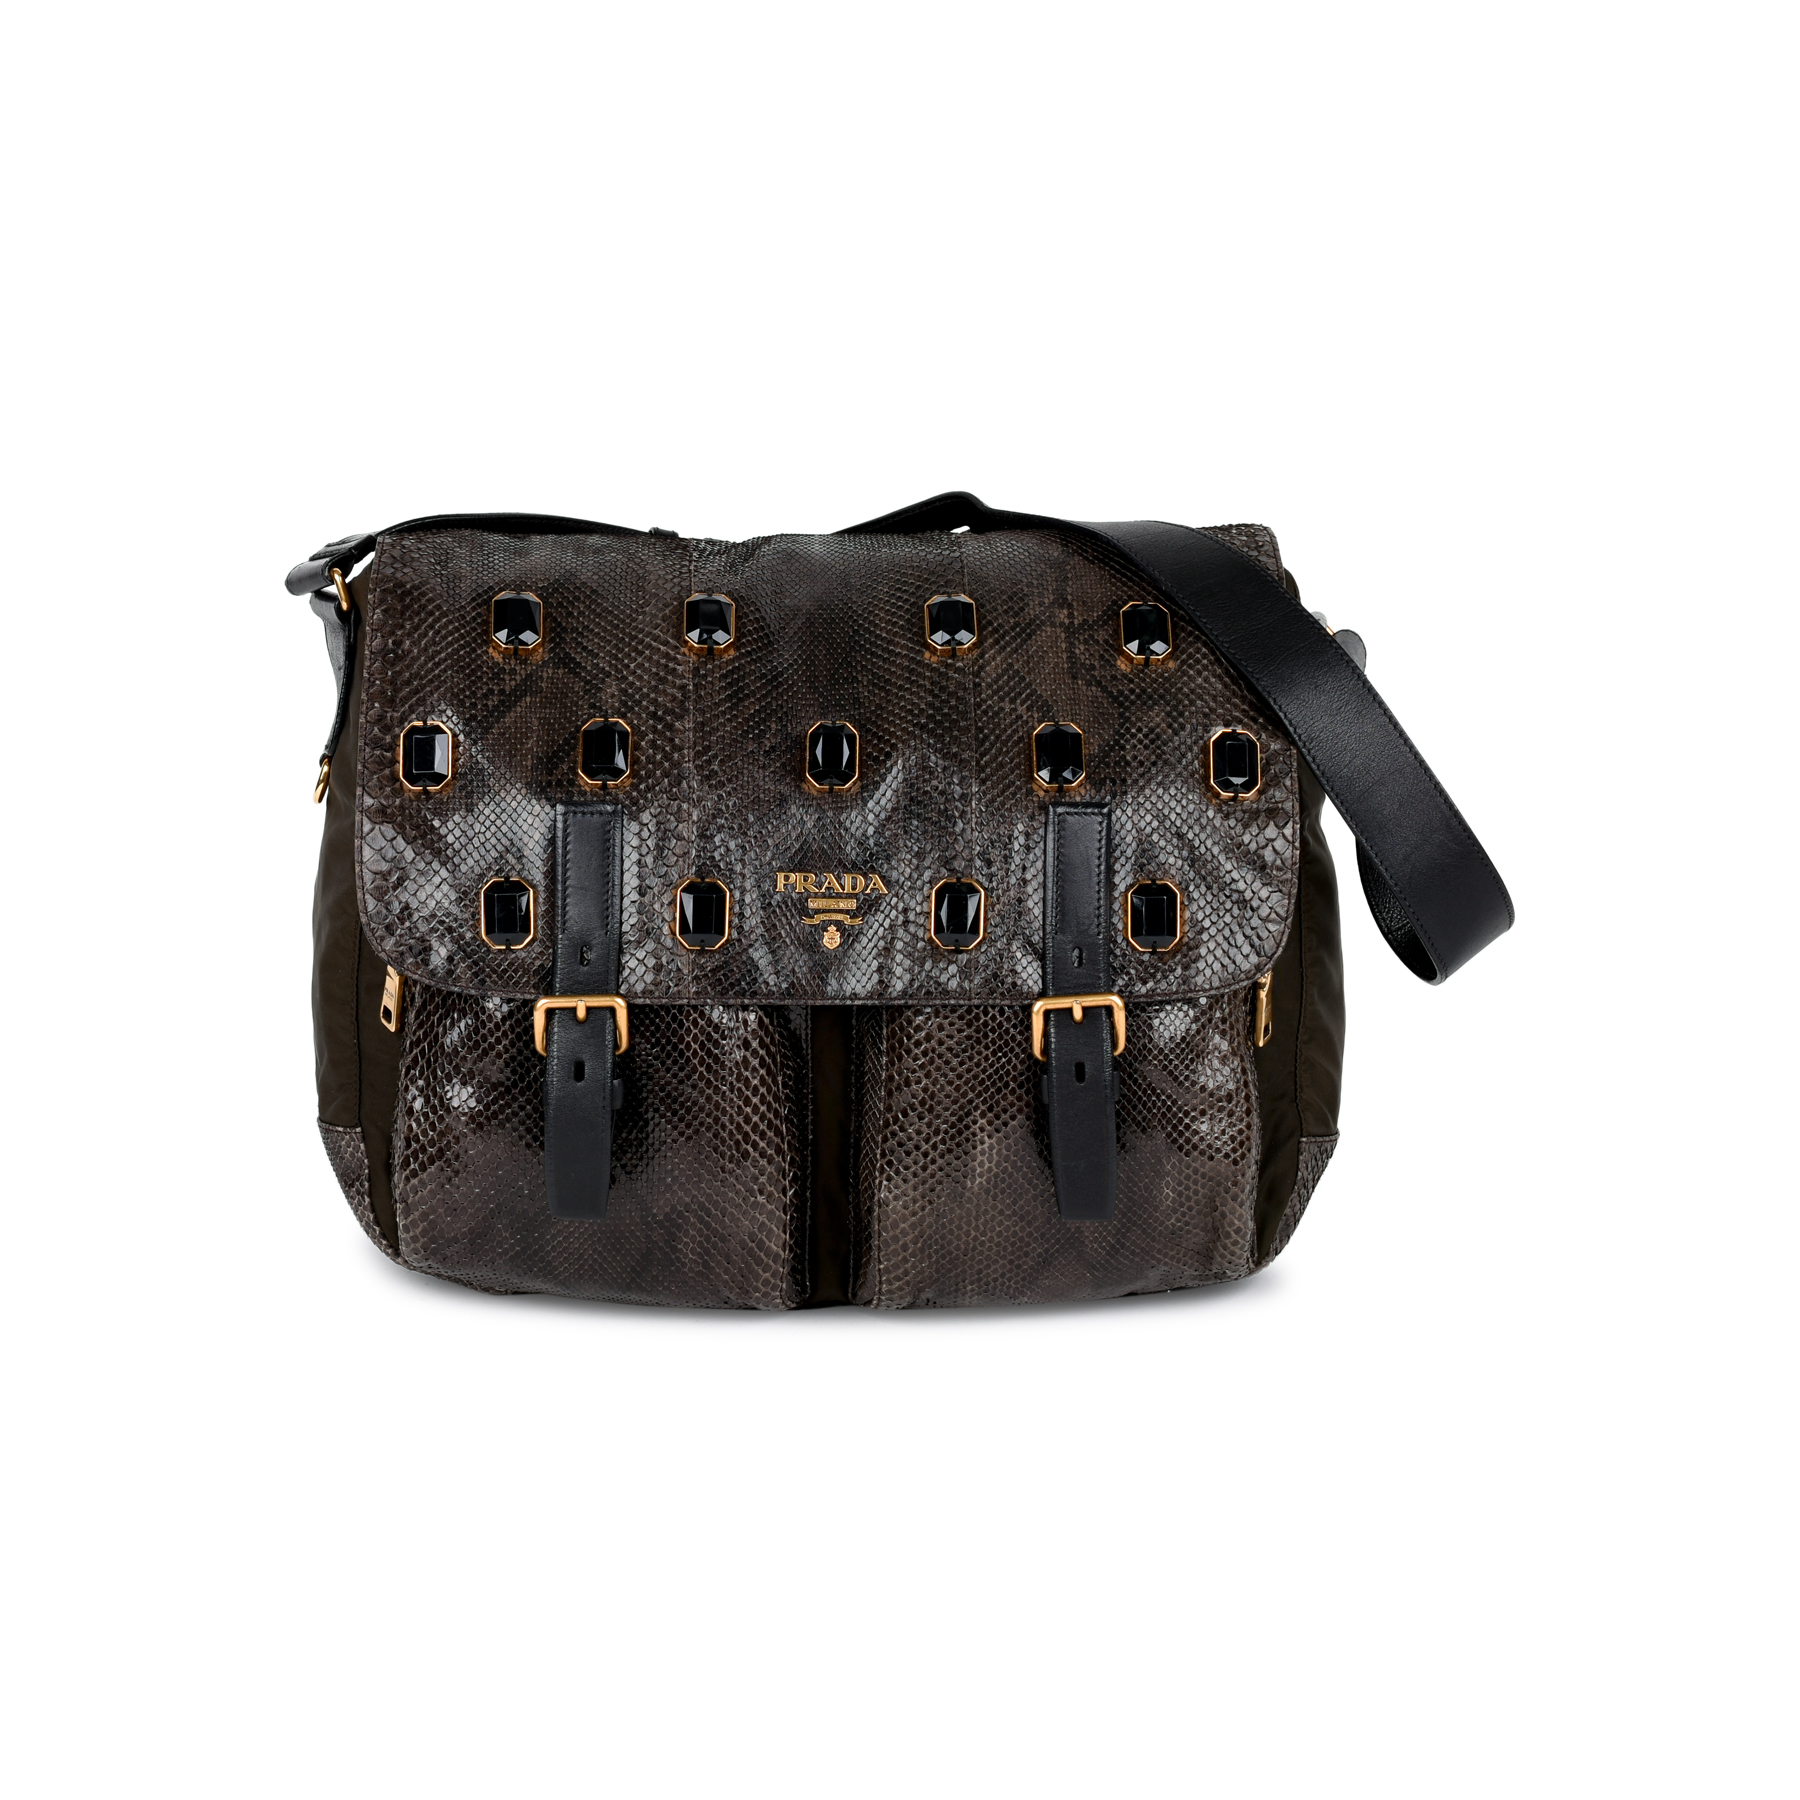 a925ba745947 Authentic Second Hand Prada Python Jewel Messenger Bag (PSS-449-00002) |  THE FIFTH COLLECTION